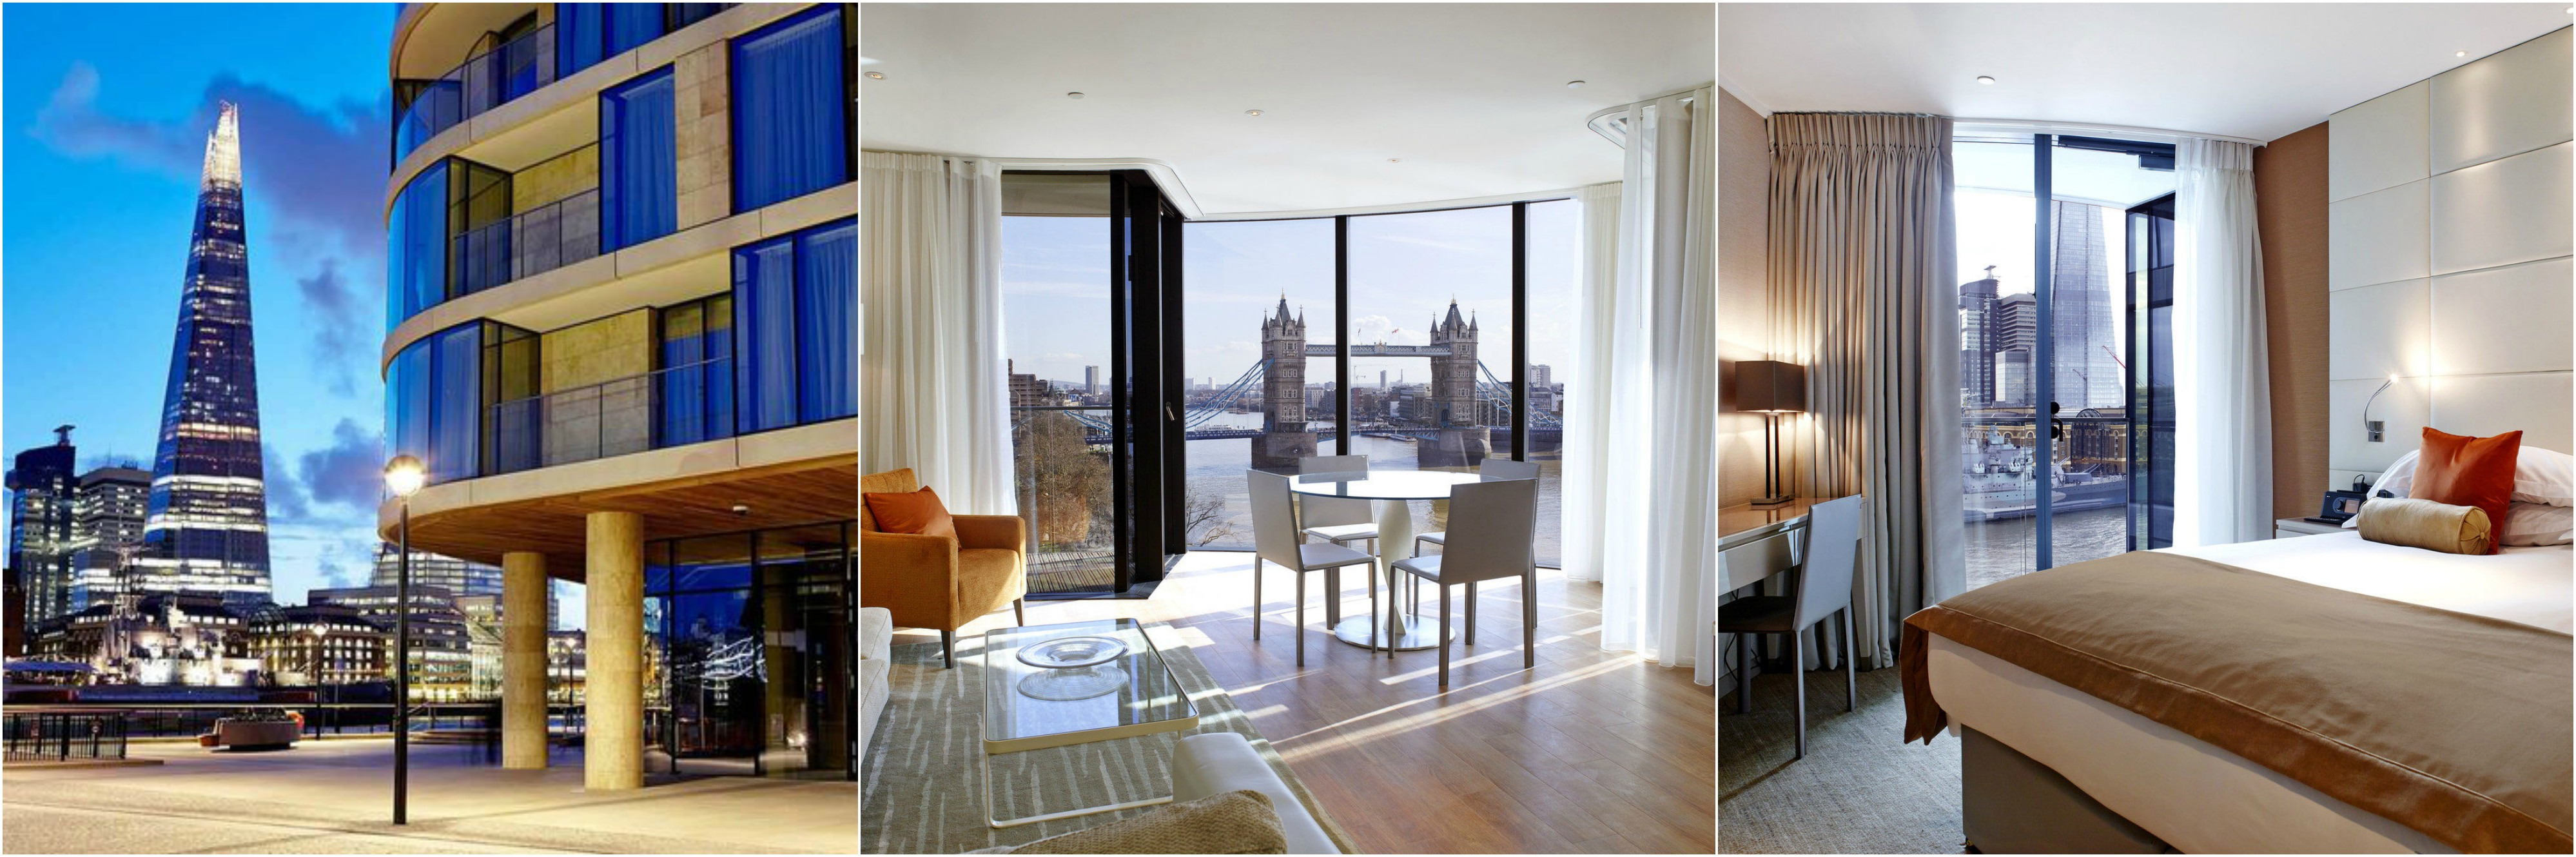 Cheval Three Quays Apartments - London